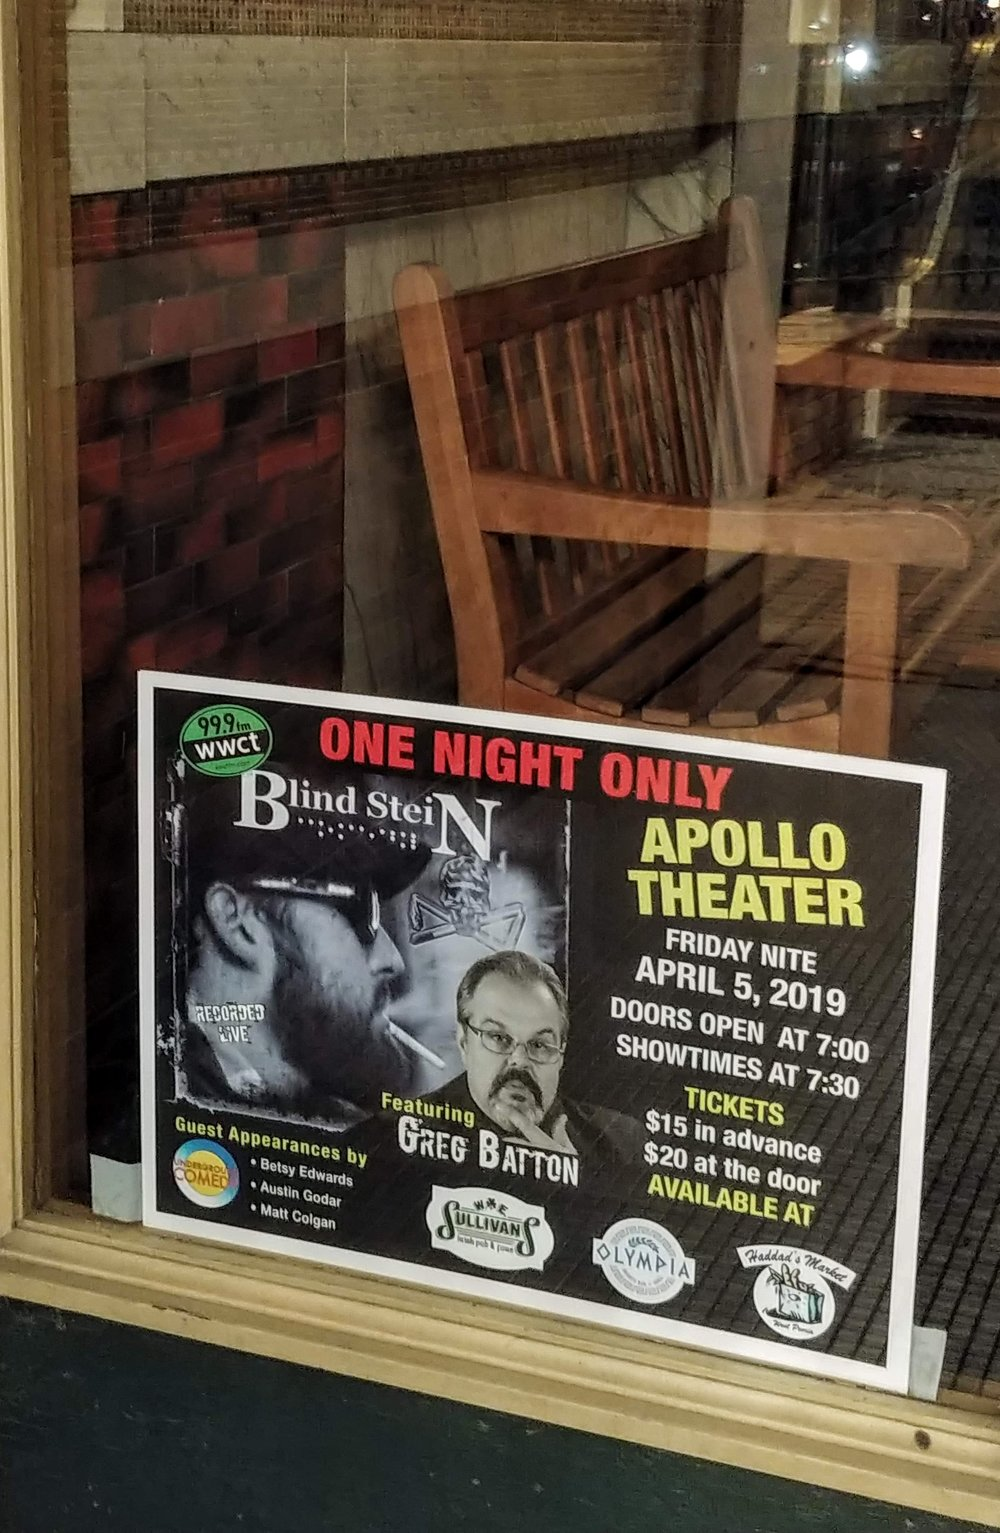 The poster with all the details has been up in the front window at the Apollo for awhile. If you don't have your tickets yet, get them now!